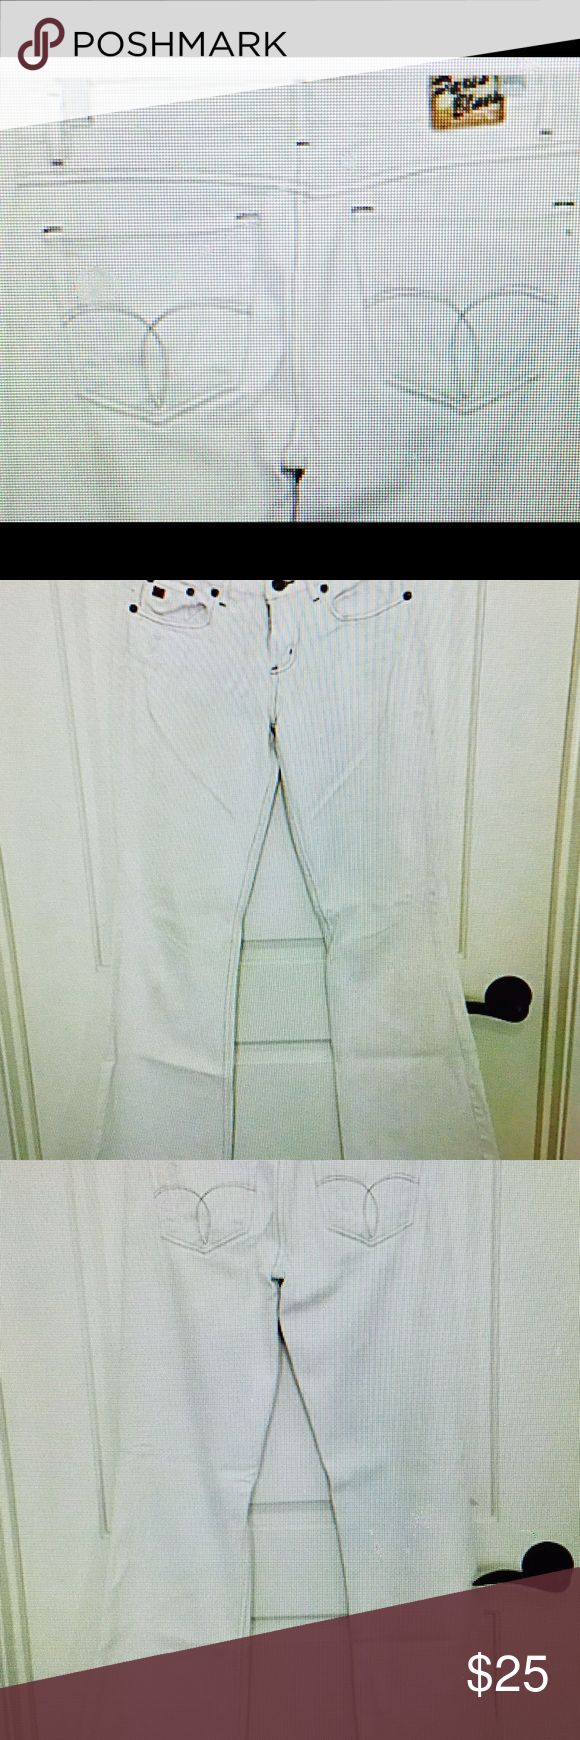 """🎉Winter White Boot Cut Jeans by Paris Blues 4Fall ⭐️Great Paris Blues Boot Cut Winter White Jeans Very On-Trend for Fall! Size 5, 32"""" inseam. Very figure flattering! Don't pass up this DEAL, it won't last - these jeans are awesome! Very nice, gently used condition! 😊Smoke-Free Home 👍 Great Posh Customer Feedback & Fast Shipping❤️ Shop w/ Confidence @jhp511 ⭐️⭐️⭐️⭐️⭐️ Paris Blues Jeans Boot Cut"""